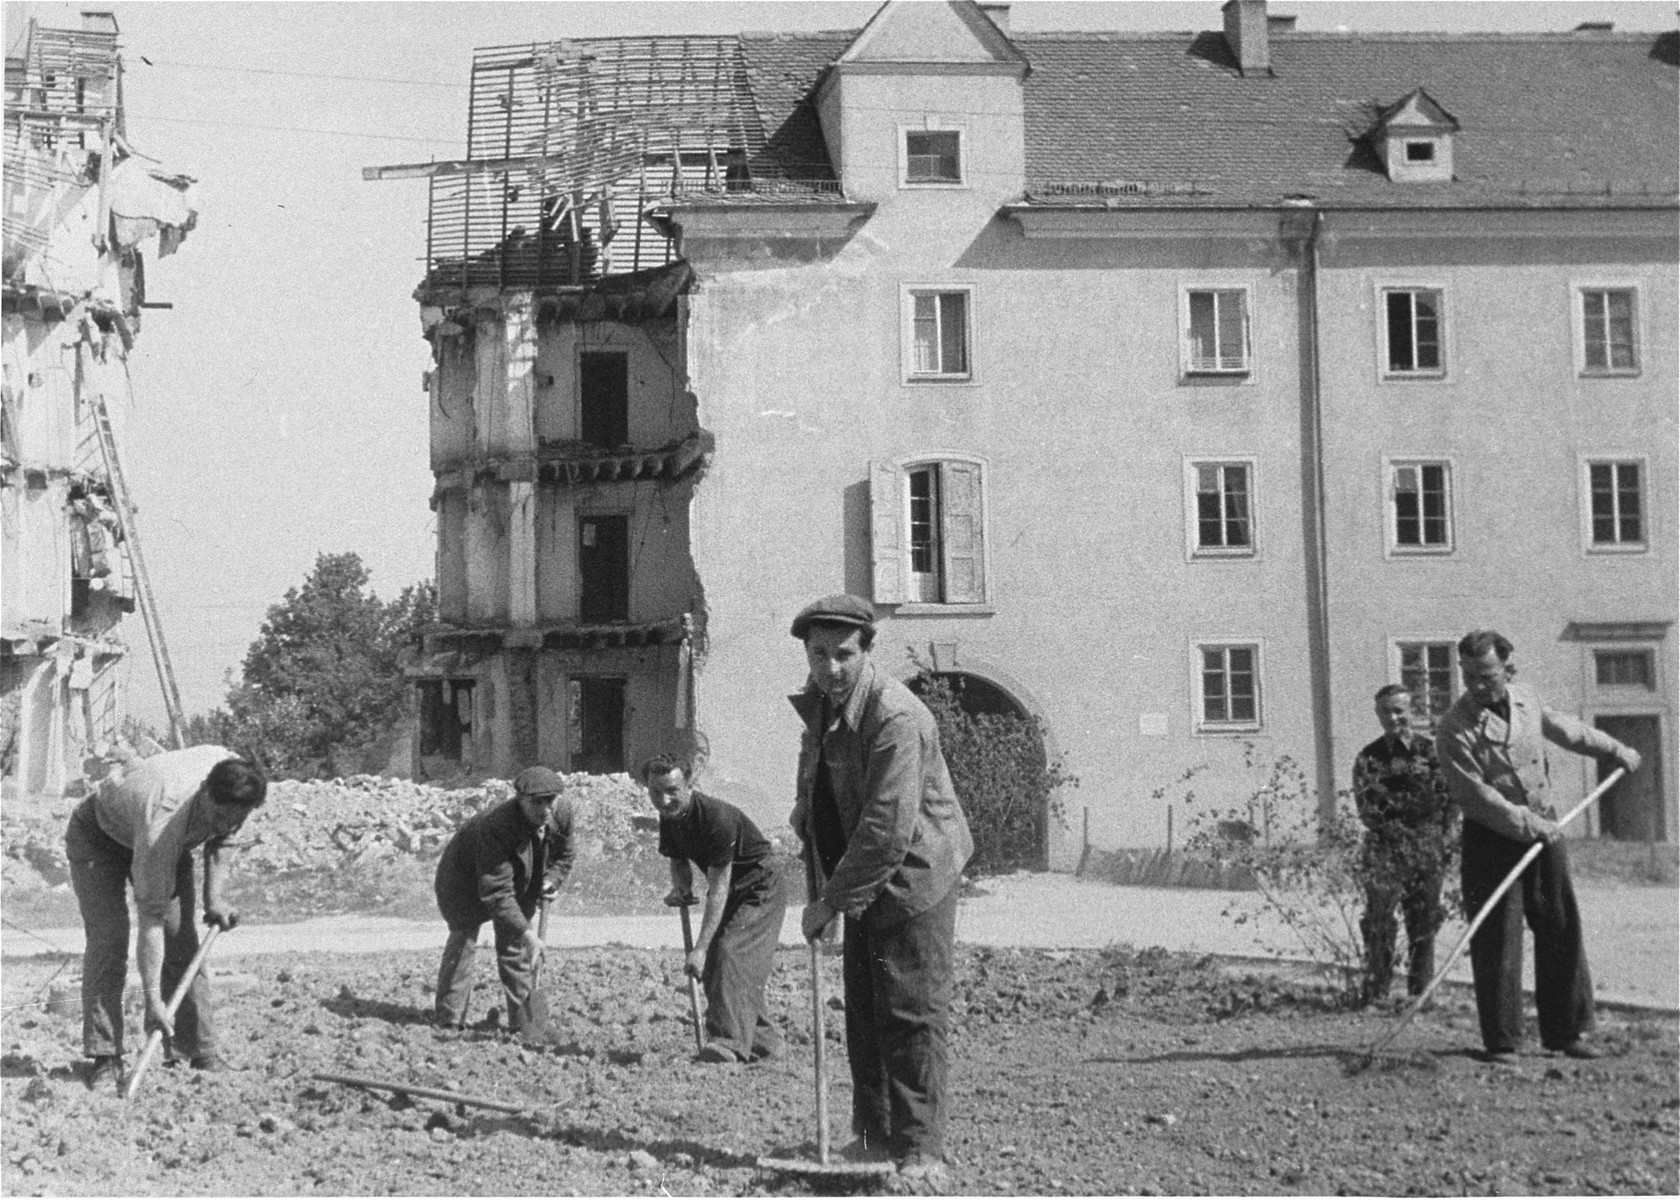 DPs dig in a field in front of a bombed out building.